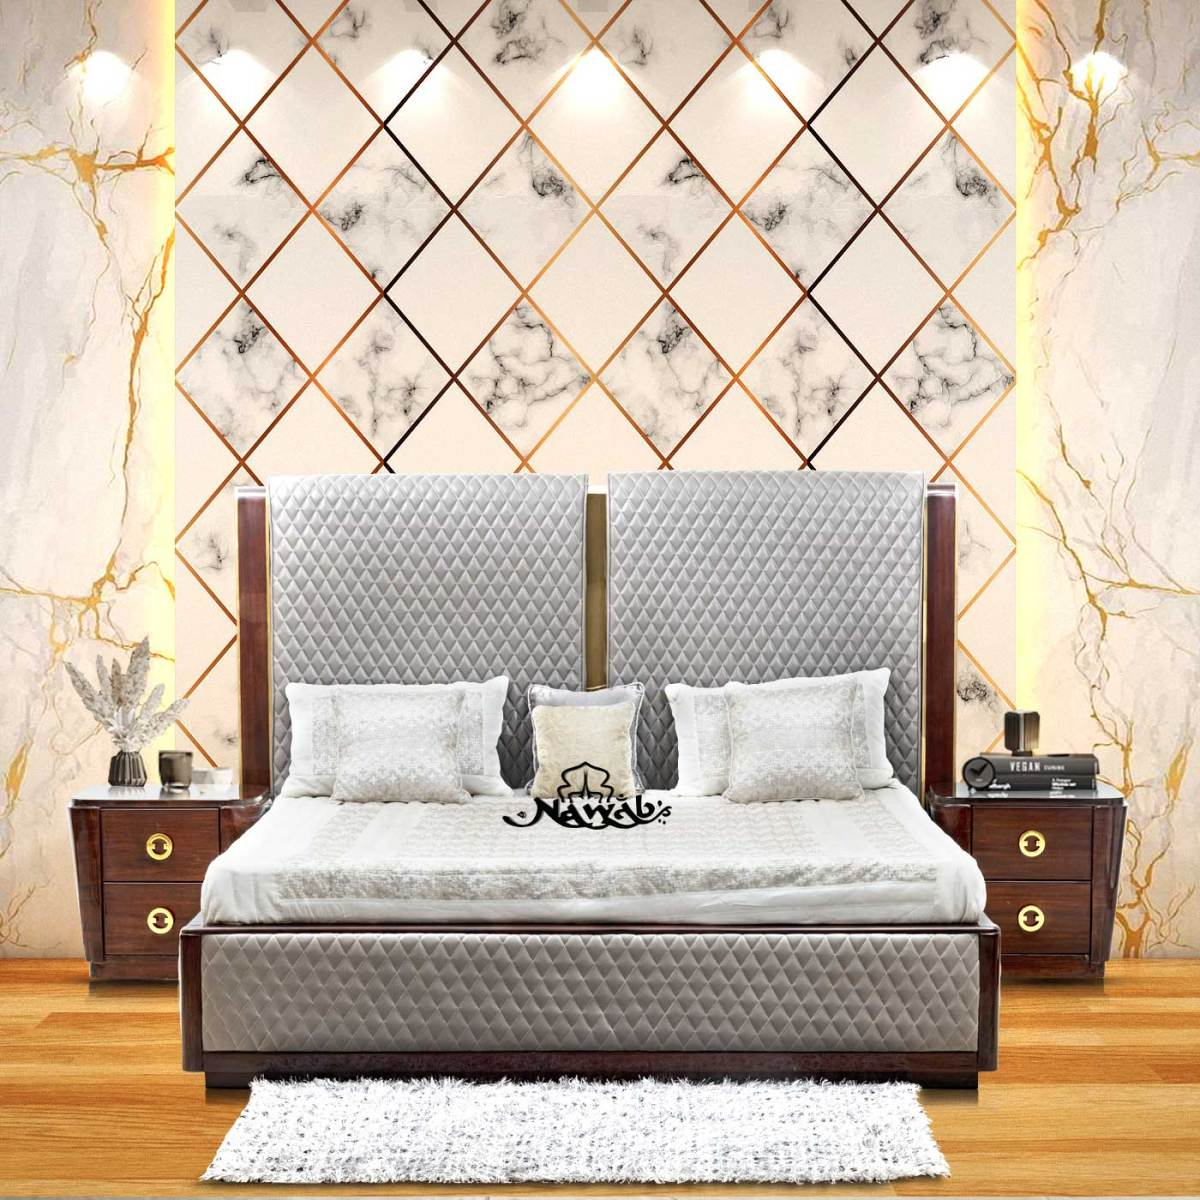 background-king-size-beds